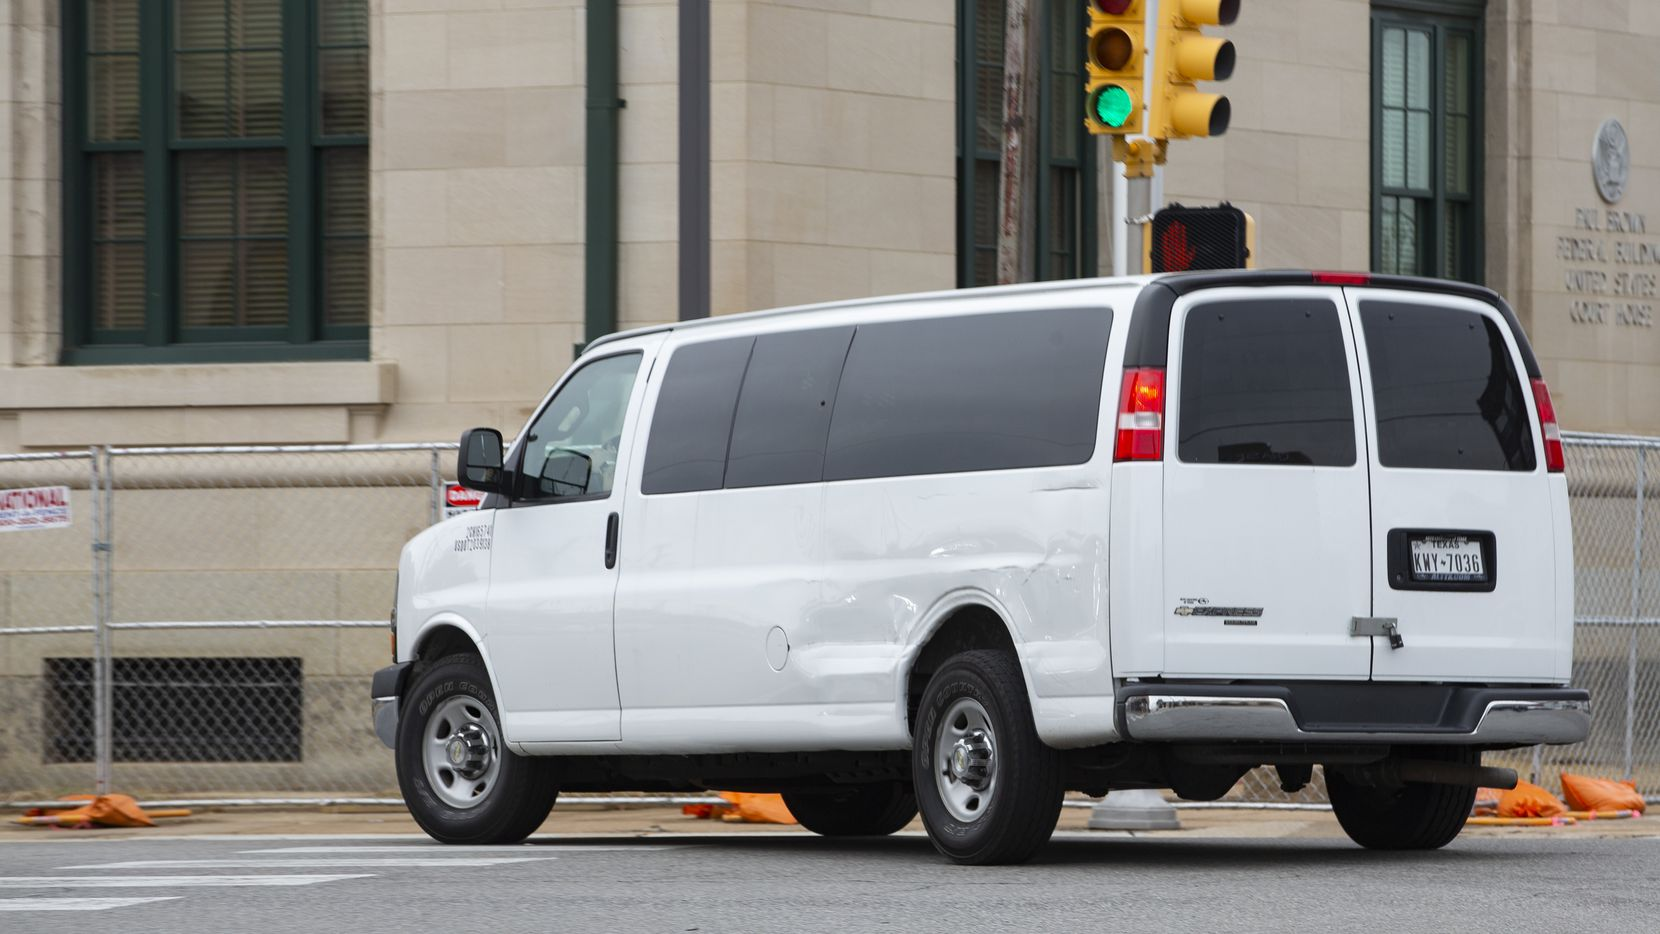 A prisoner transport van leaves the United States District Court for the Eastern District of Texas following the detention hearing for Troy Anthony Smocks, 58, in Sherman on Thursday, Jan. 21, 2021.